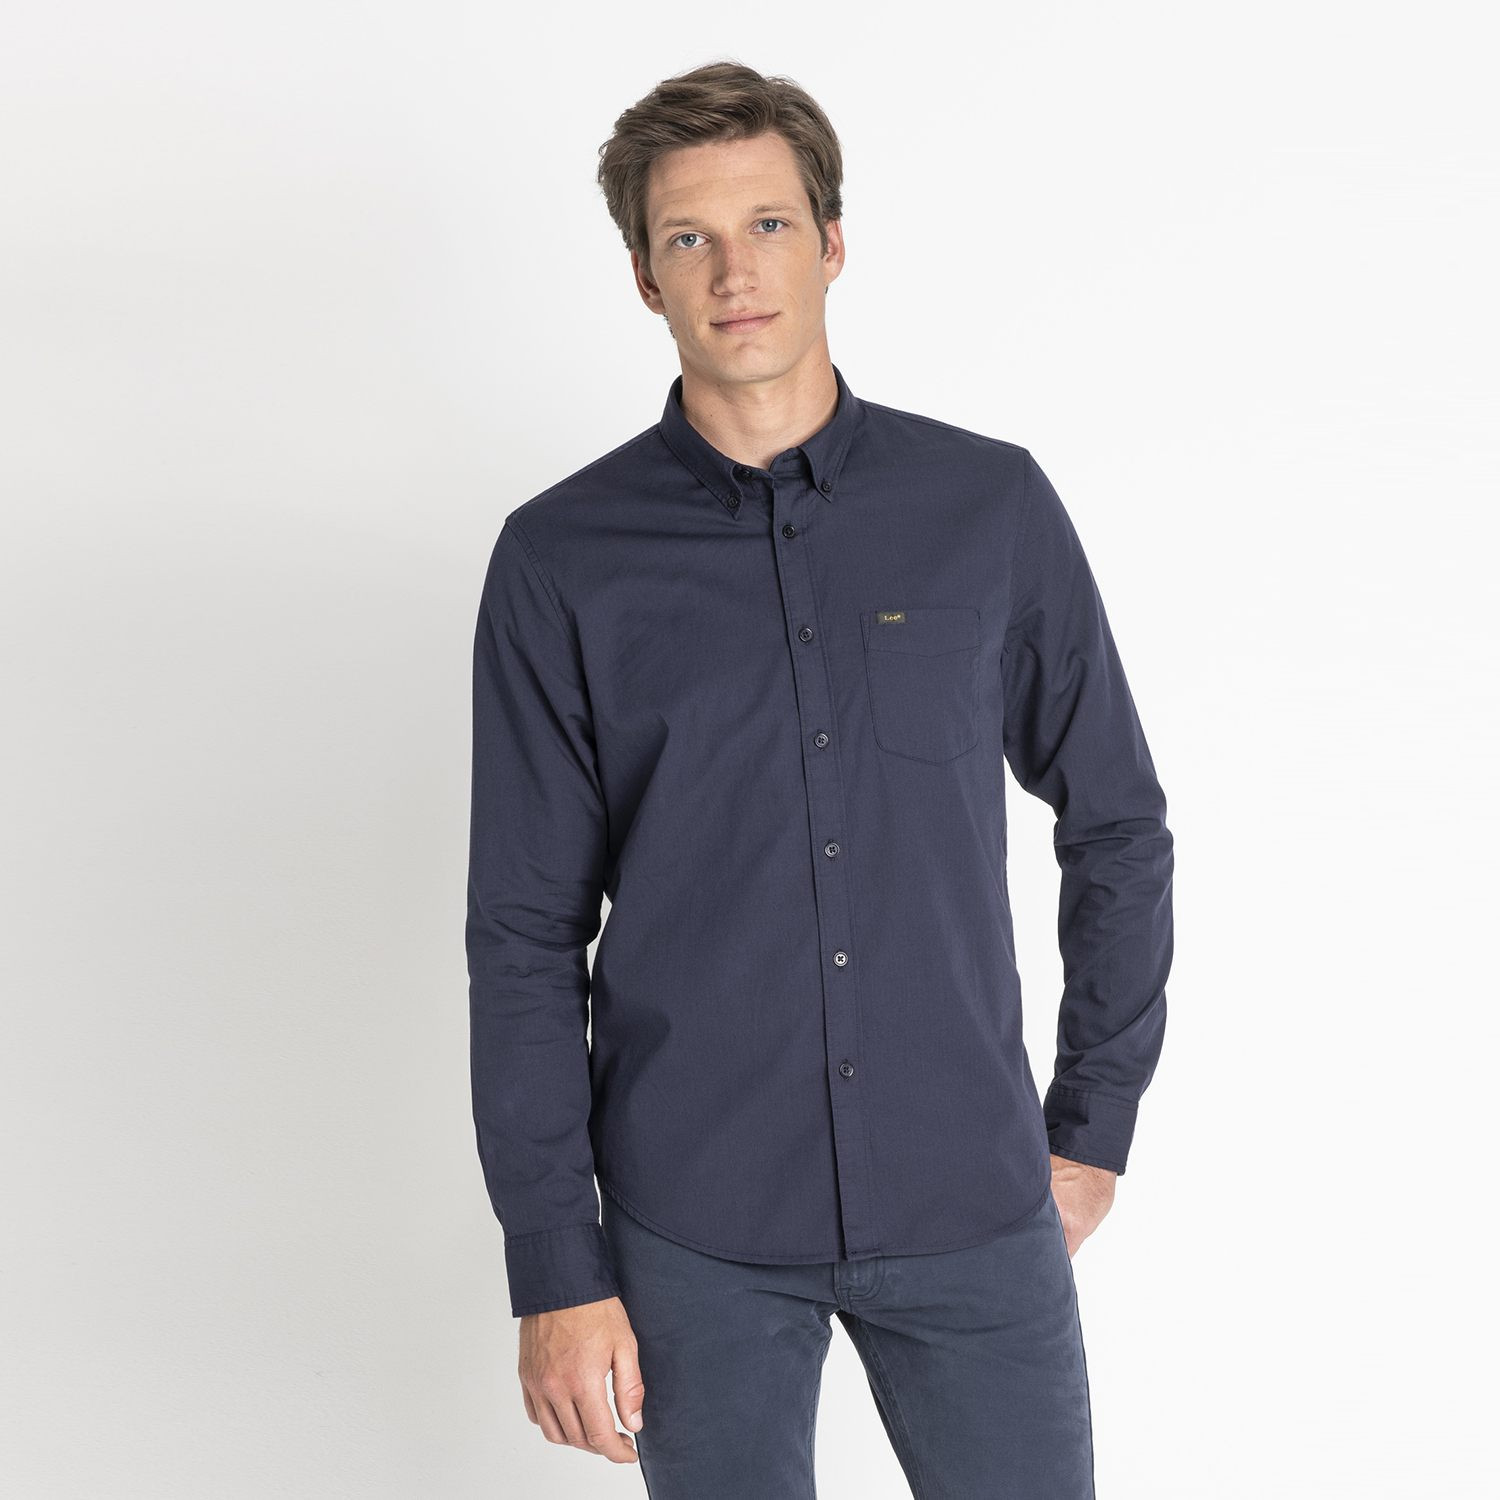 Lee LEE BUTTON DOWN MIDNIGHT NAVY (9000037234_2749)